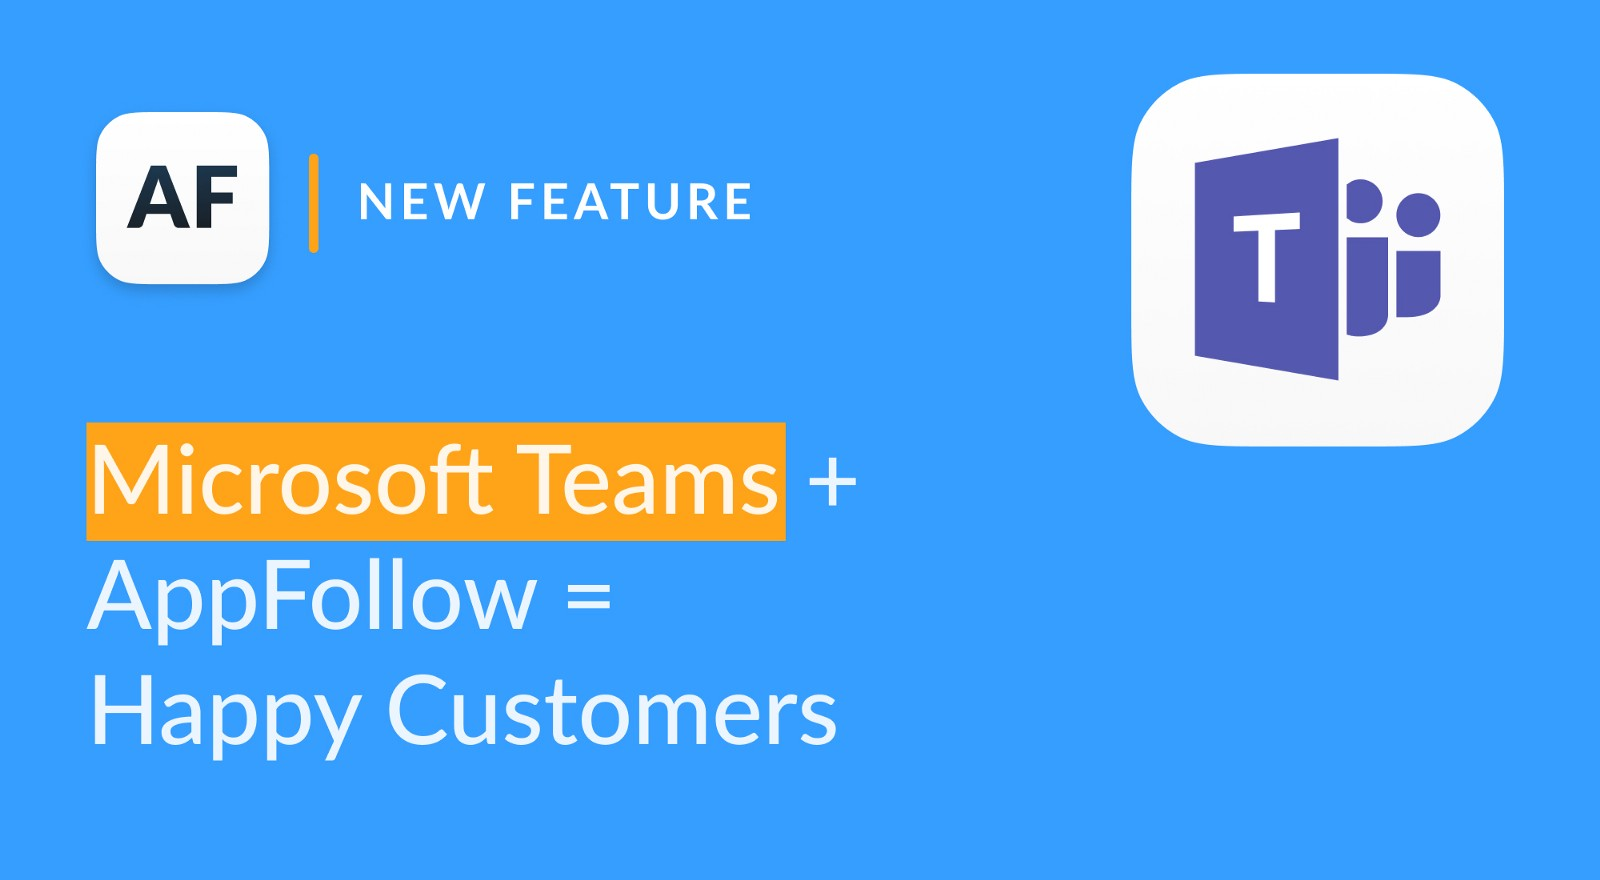 Microsoft Teams + AppFollow = Happy Customers